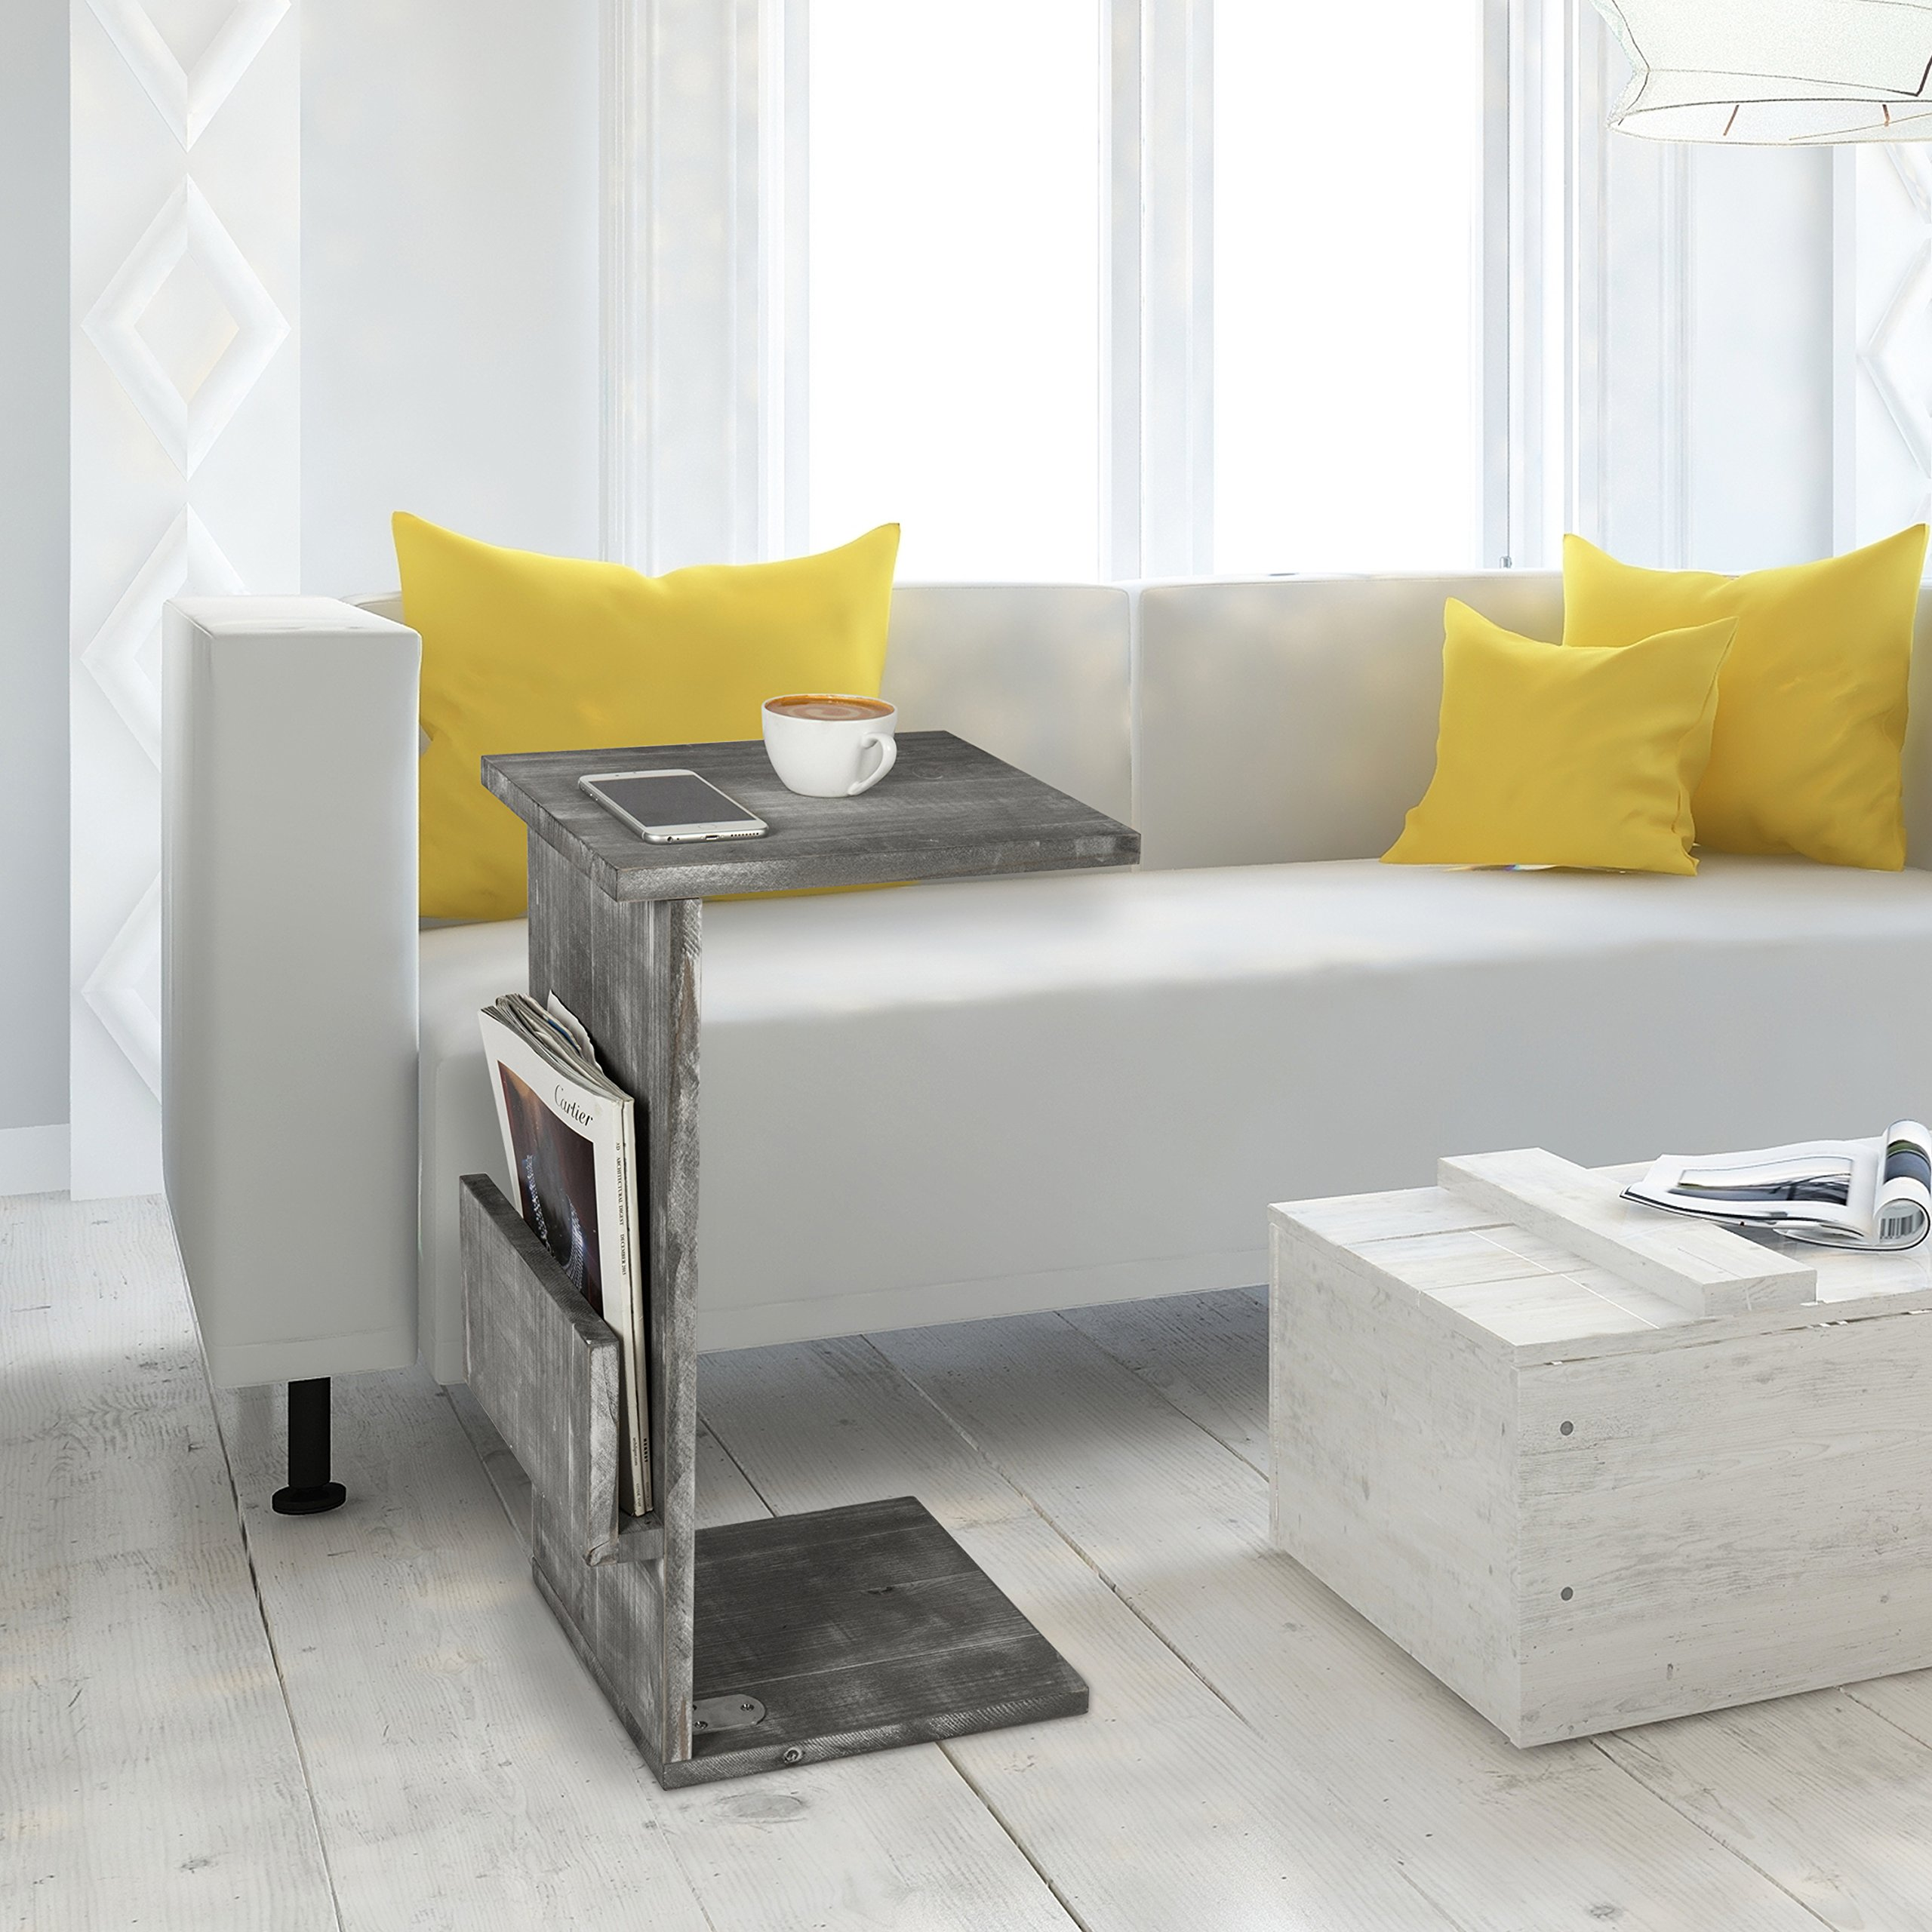 Gray Whitewashed Wood Sofa Side Table with Magazine Holder Rack, Under-the-Couch Sliding Tray by MyGift (Image #3)